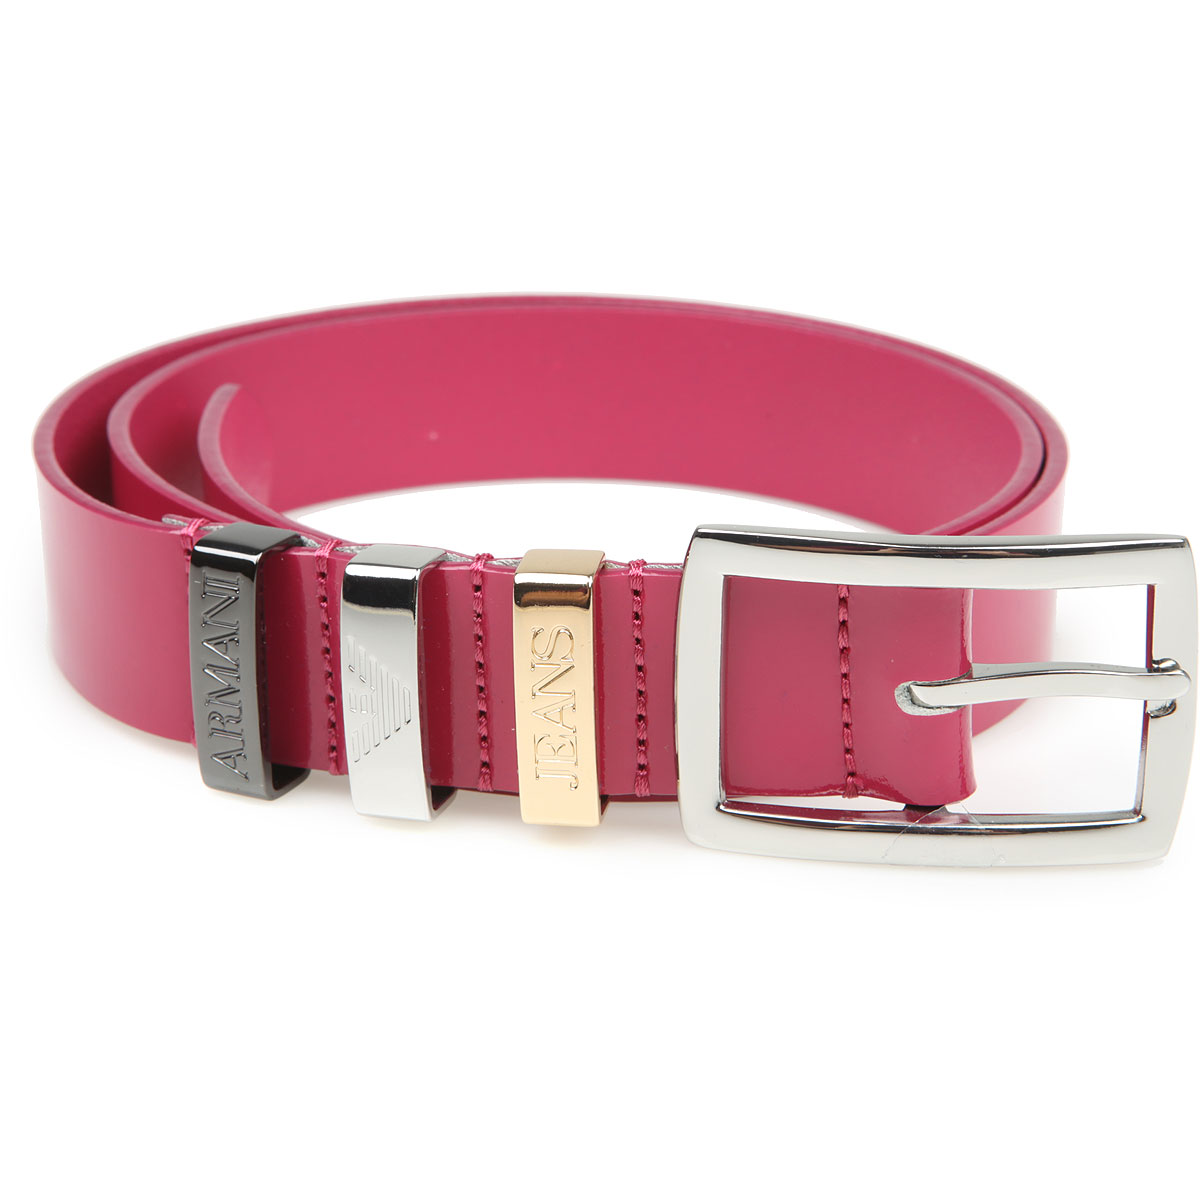 Armani Jeans Womens Belts On Sale, fuxia, Patent Leather, 2017, II (80-95 cm  32-38 inches) V (97-112 cm  38.2-44.1 inches)